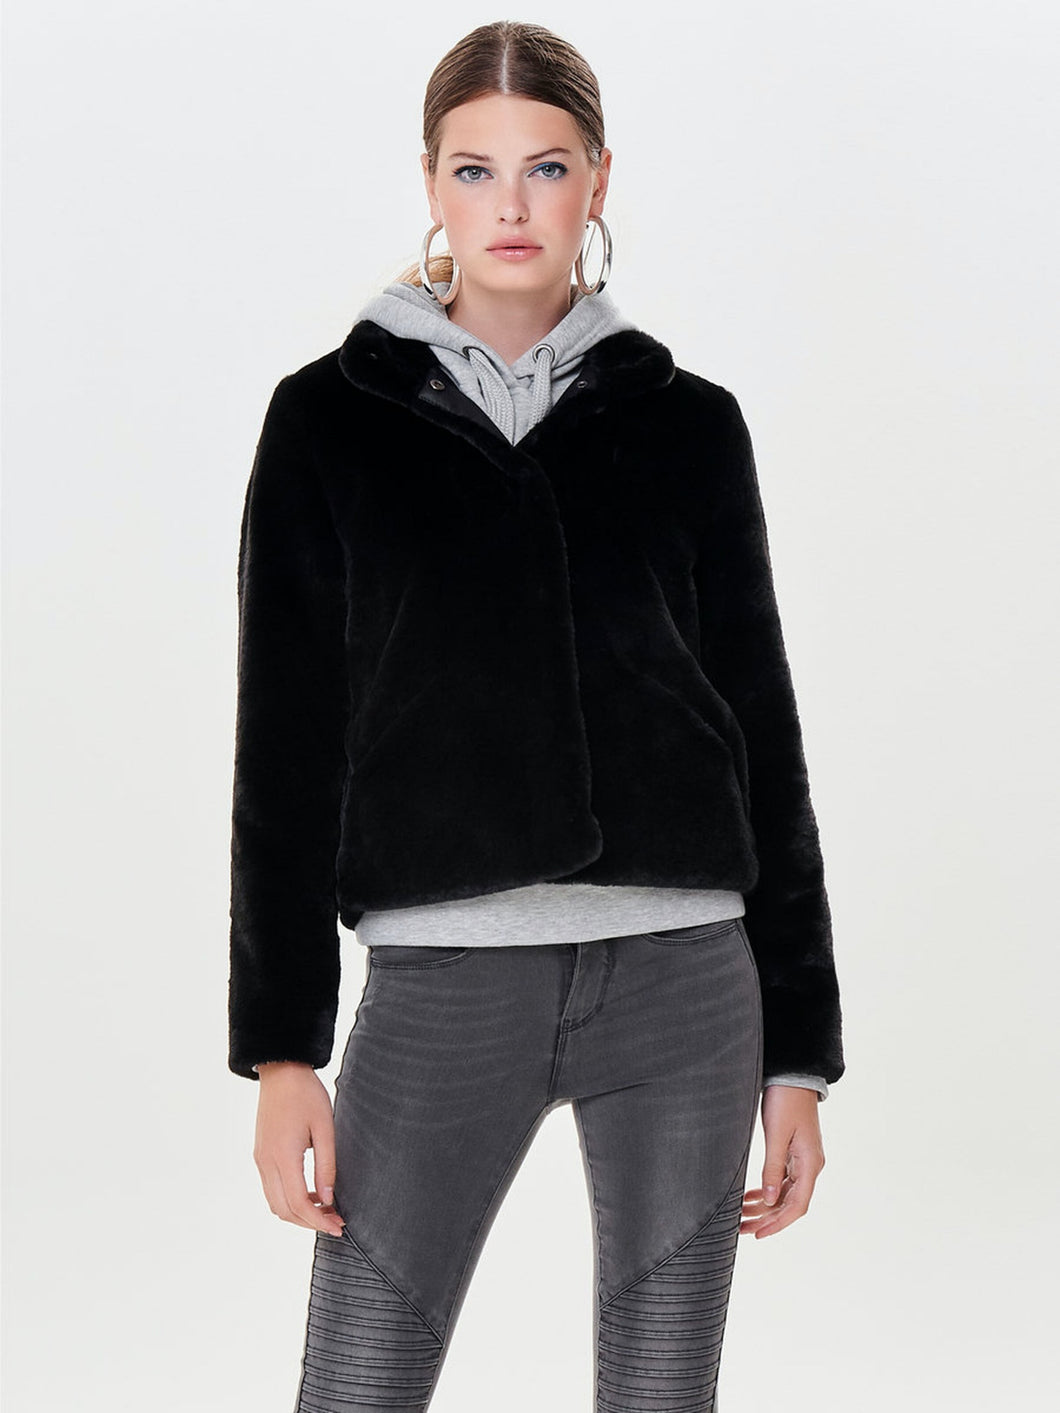 Vida Faux Fur Coat - Black / XS - entre2016